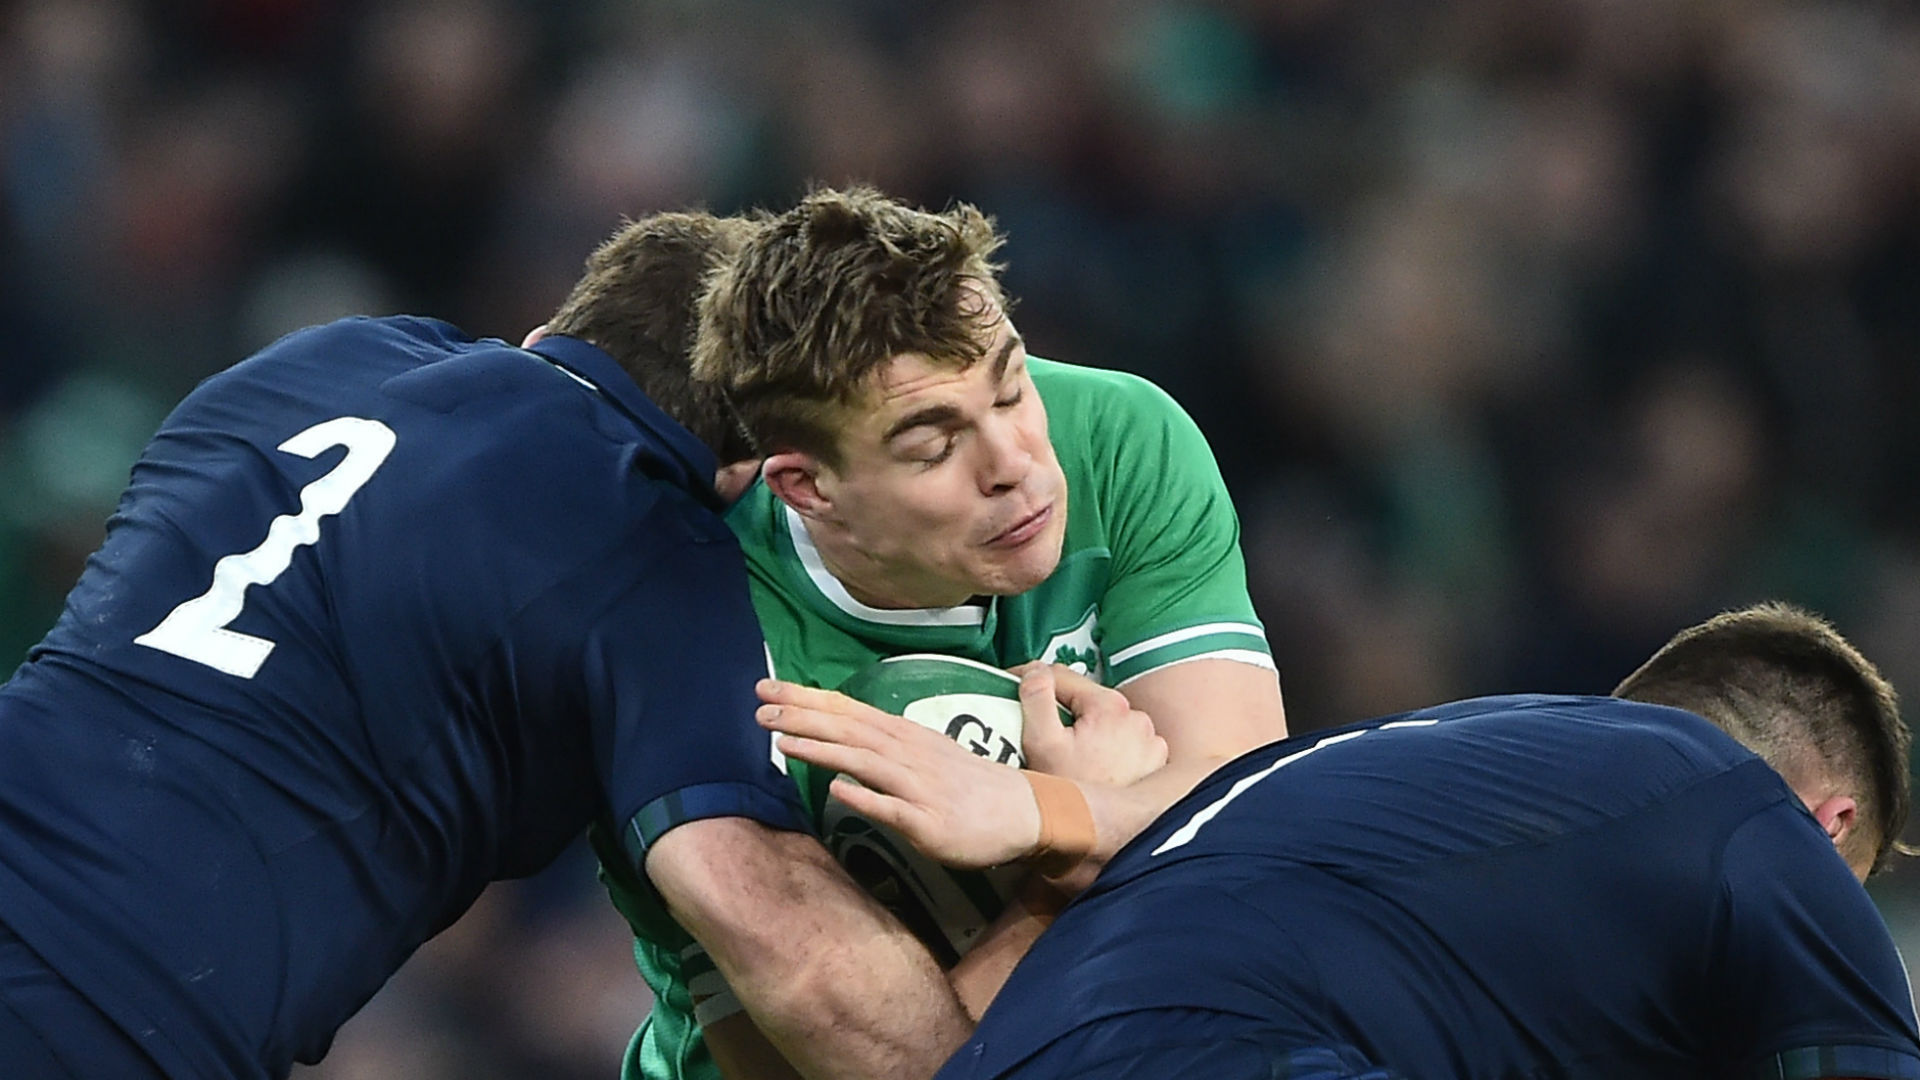 BBC asks 'Who Blinks First?' to promote Six Nations coverage